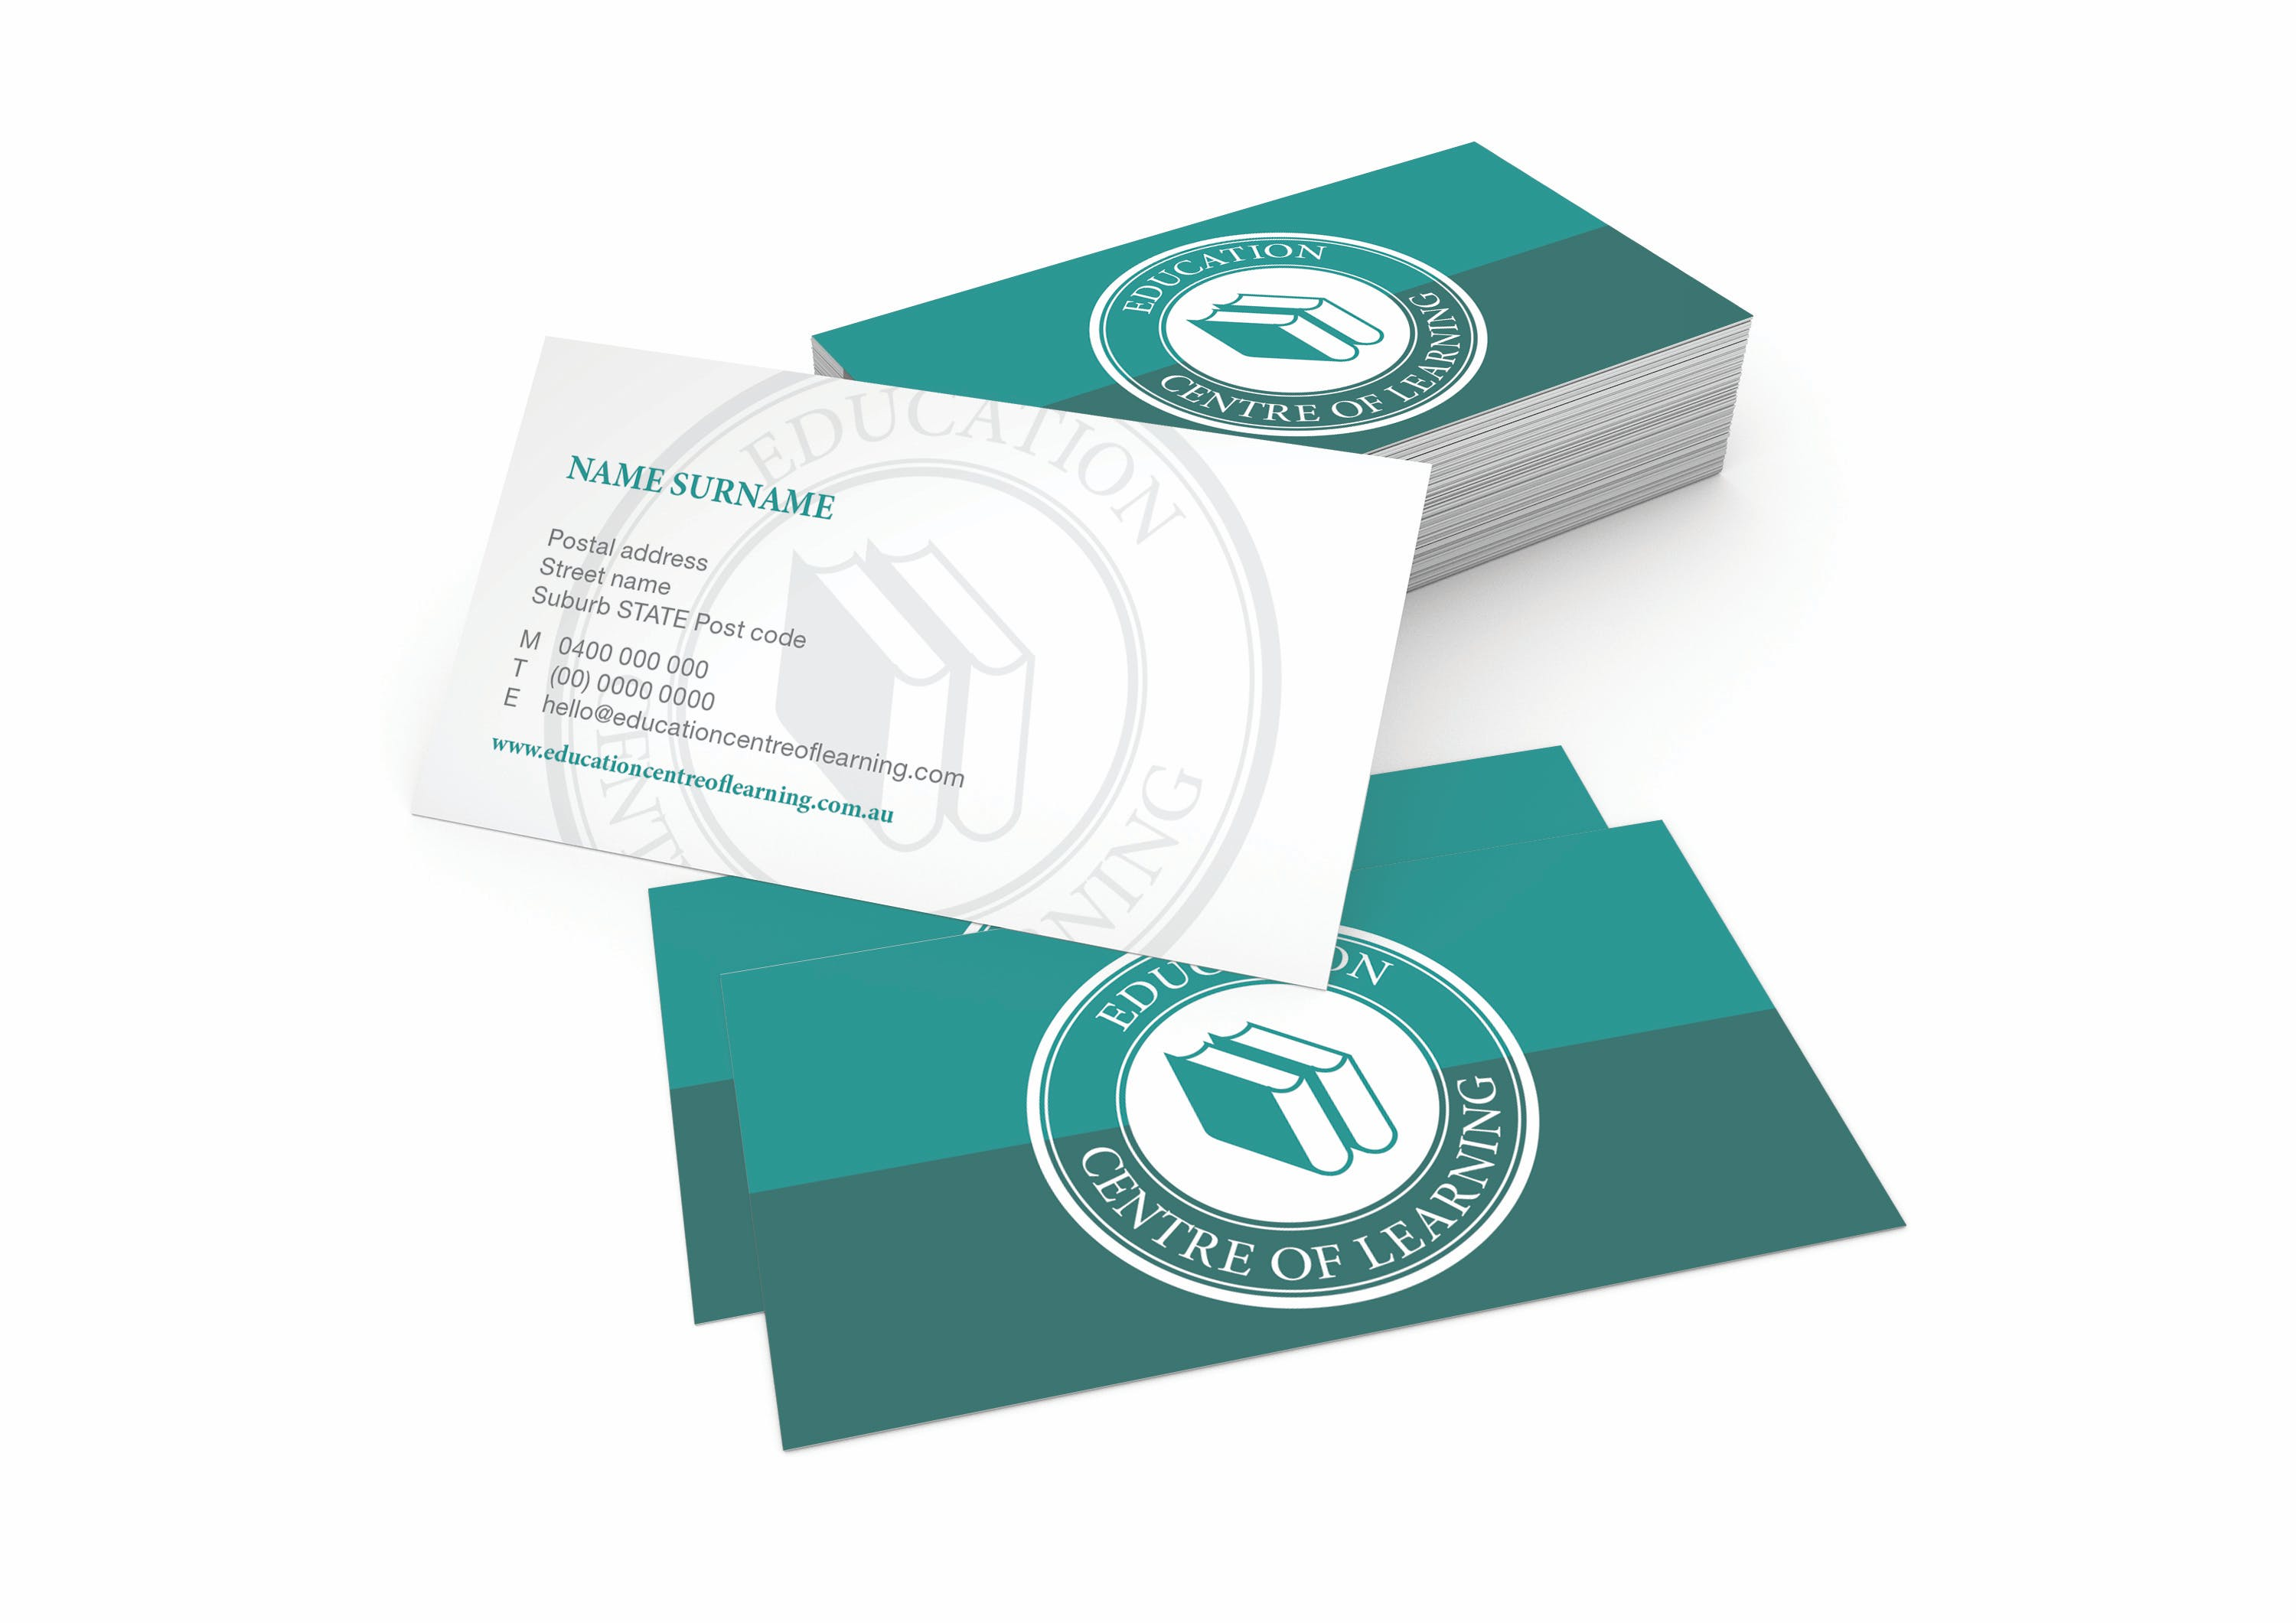 Premium celloglazed business cards double sided 350gsm premium celloglazed business cards double sided 350gsm psbsprm350gds share reheart Choice Image